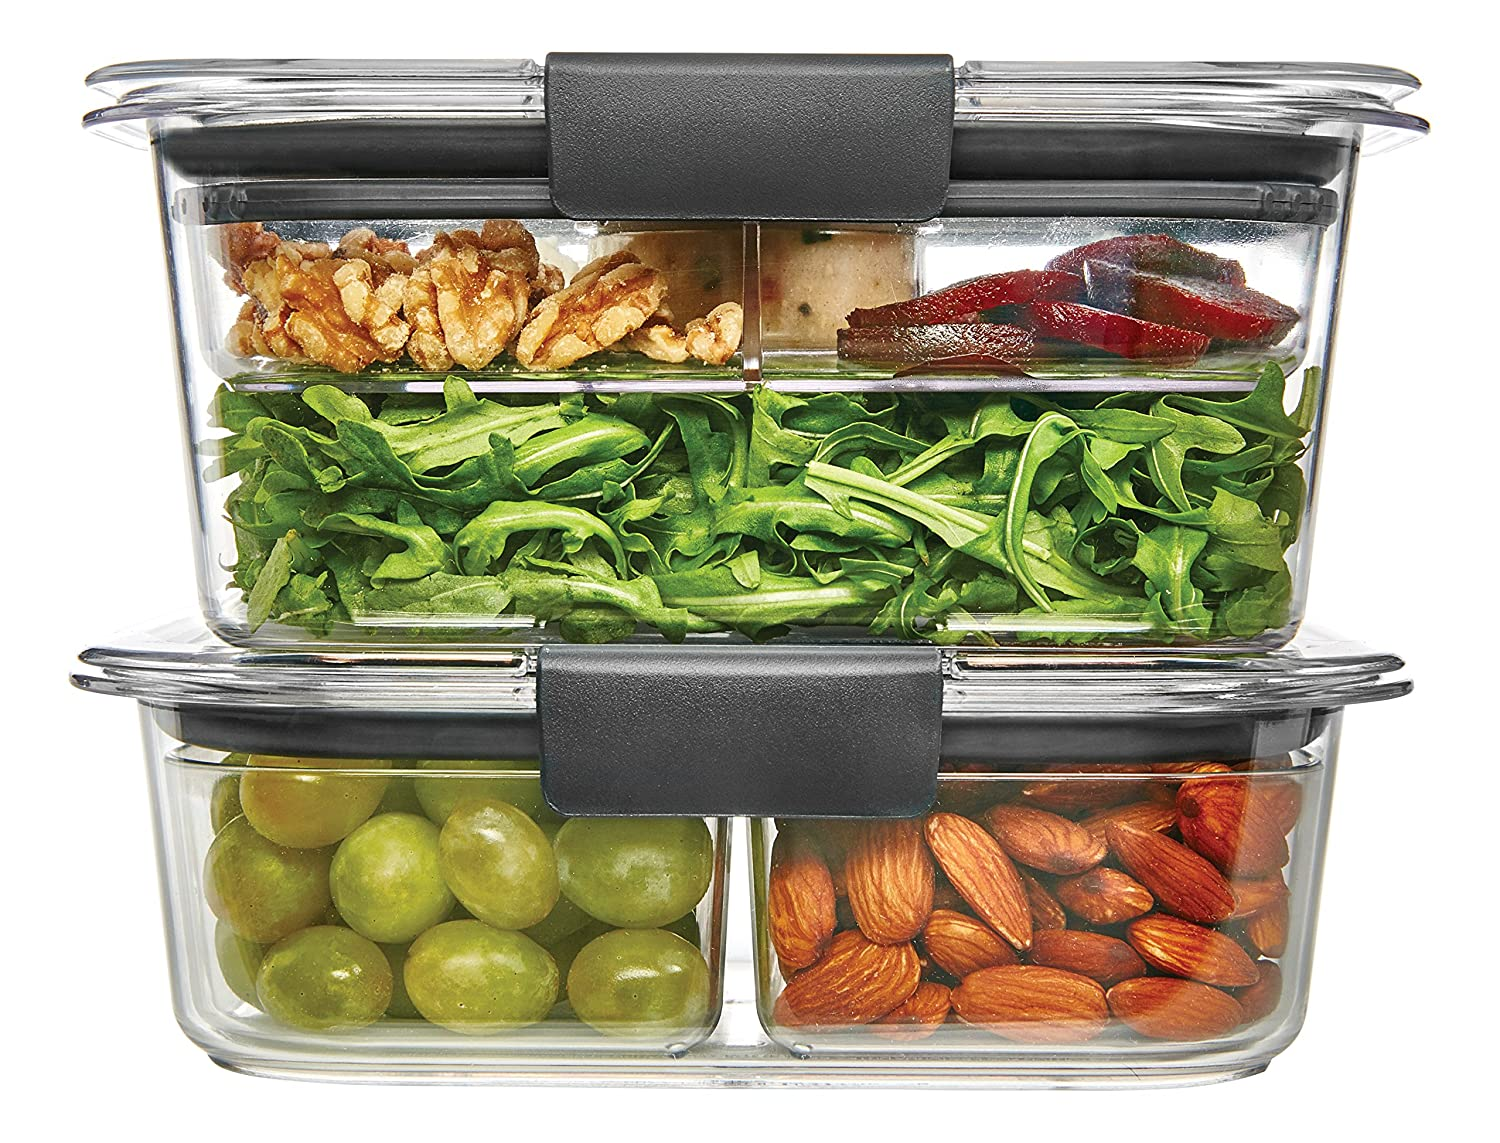 Rubbermaid Brilliance Salad/Snack Lunch Storage Container Combo Kit, 100 Percents Leak Proof, Plastic, Clear by Rubbermaid